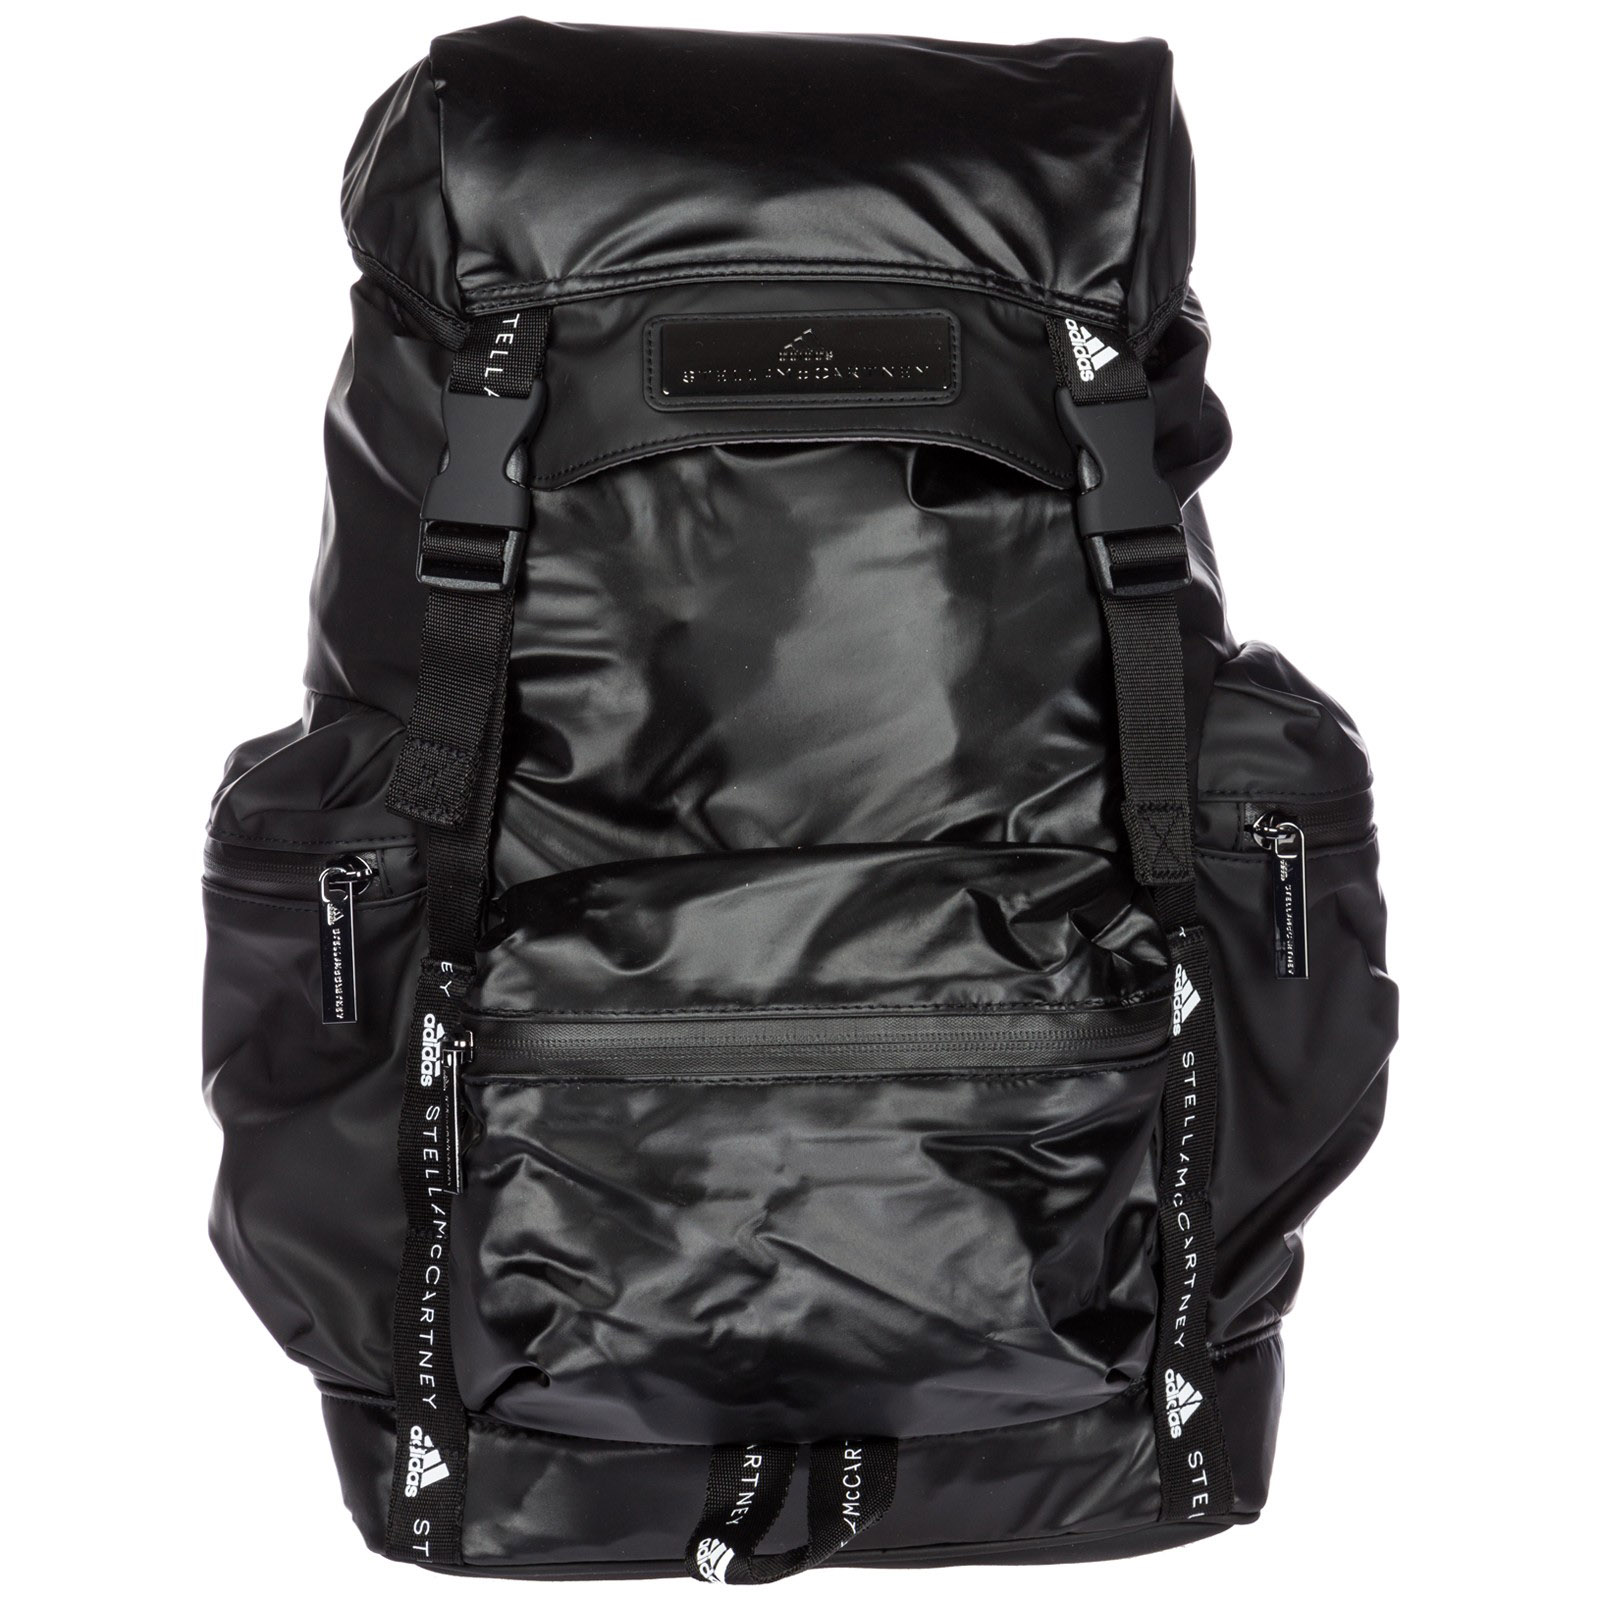 WOMEN'S RUCKSACK BACKPACK TRAVEL